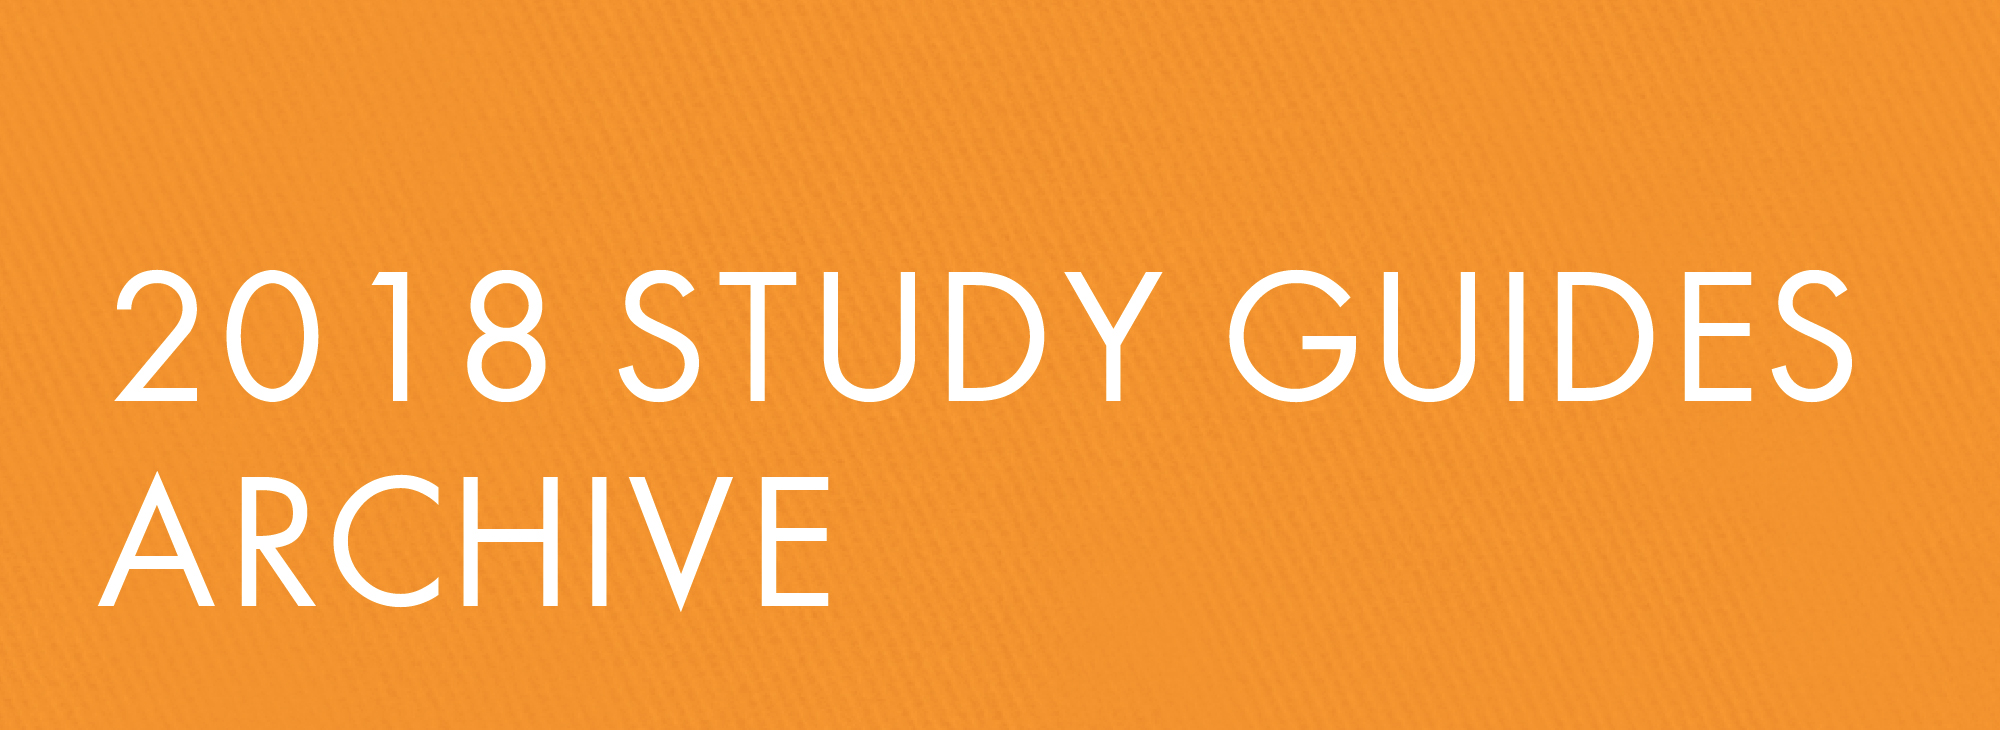 2018 Study Guide Archive